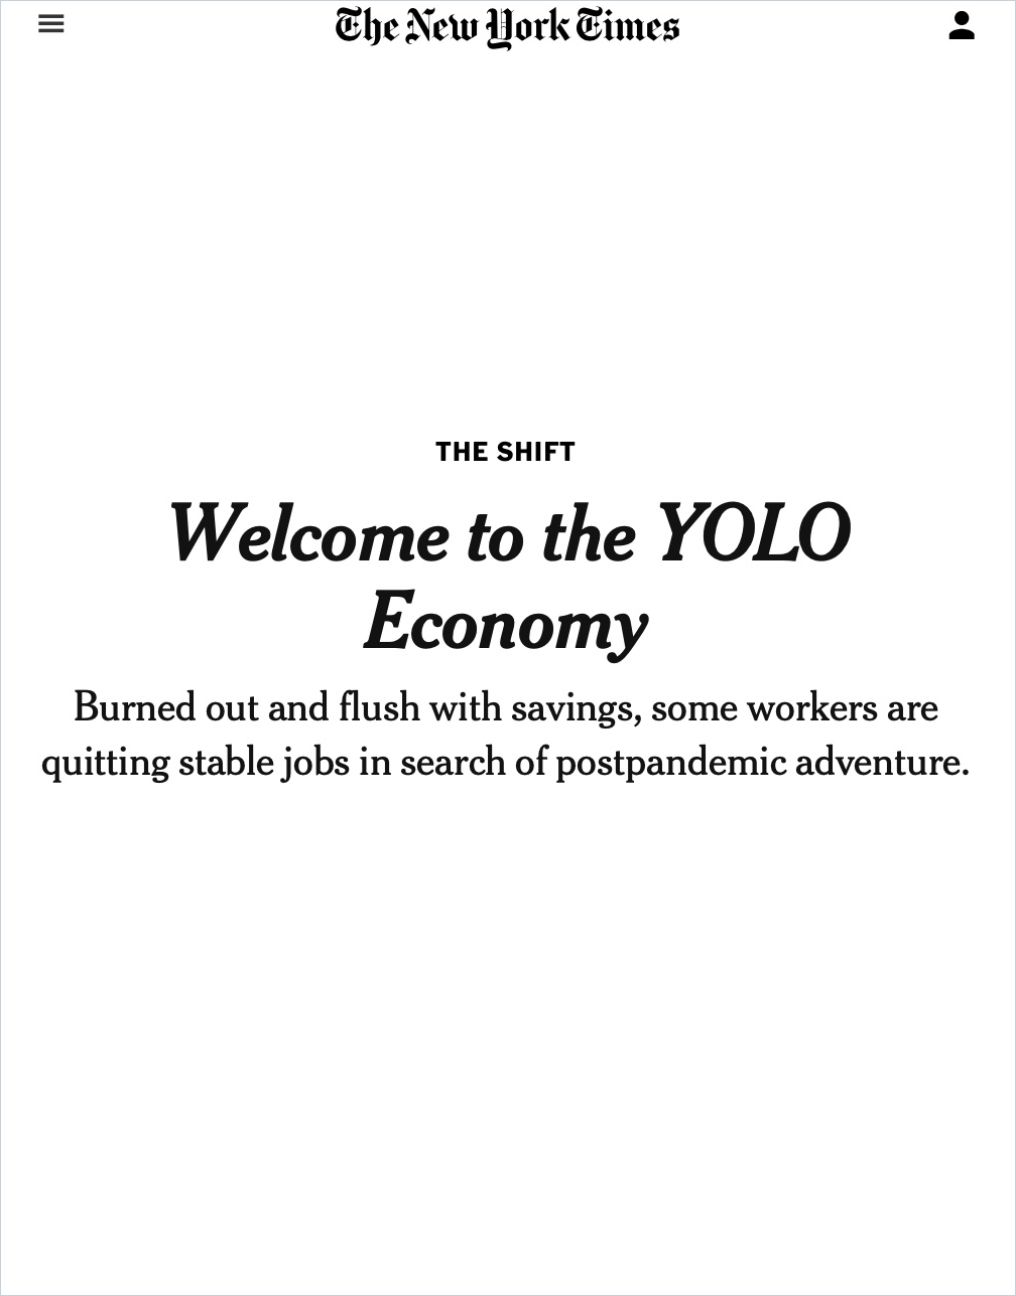 Image of: Welcome to the YOLO Economy